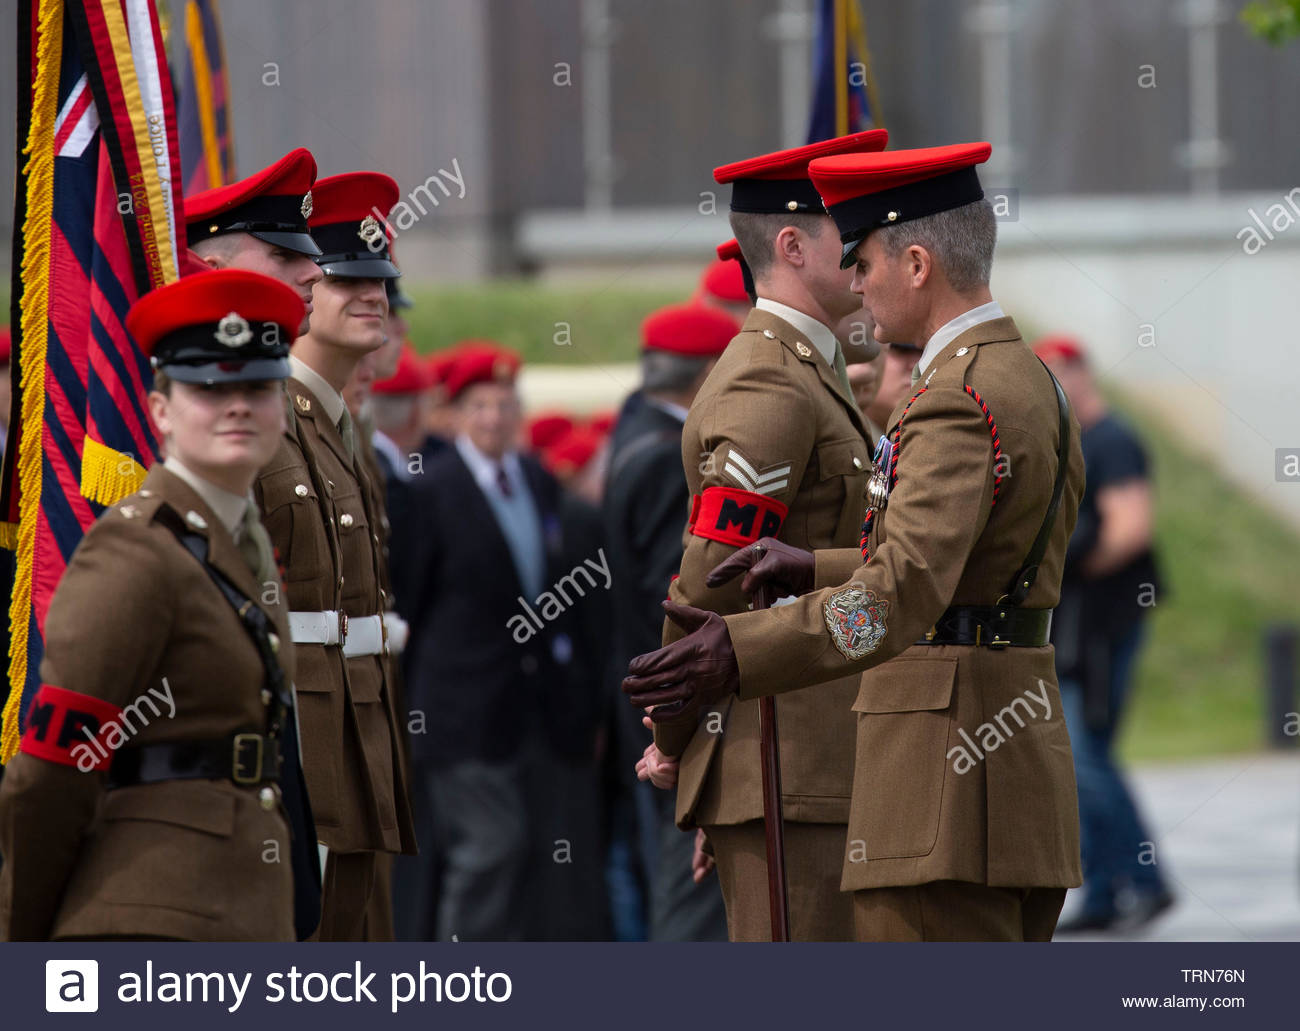 airewas-england-01-june-2019-serving-members-and-veterans-of-the-royal-military-police-parade-...jpg